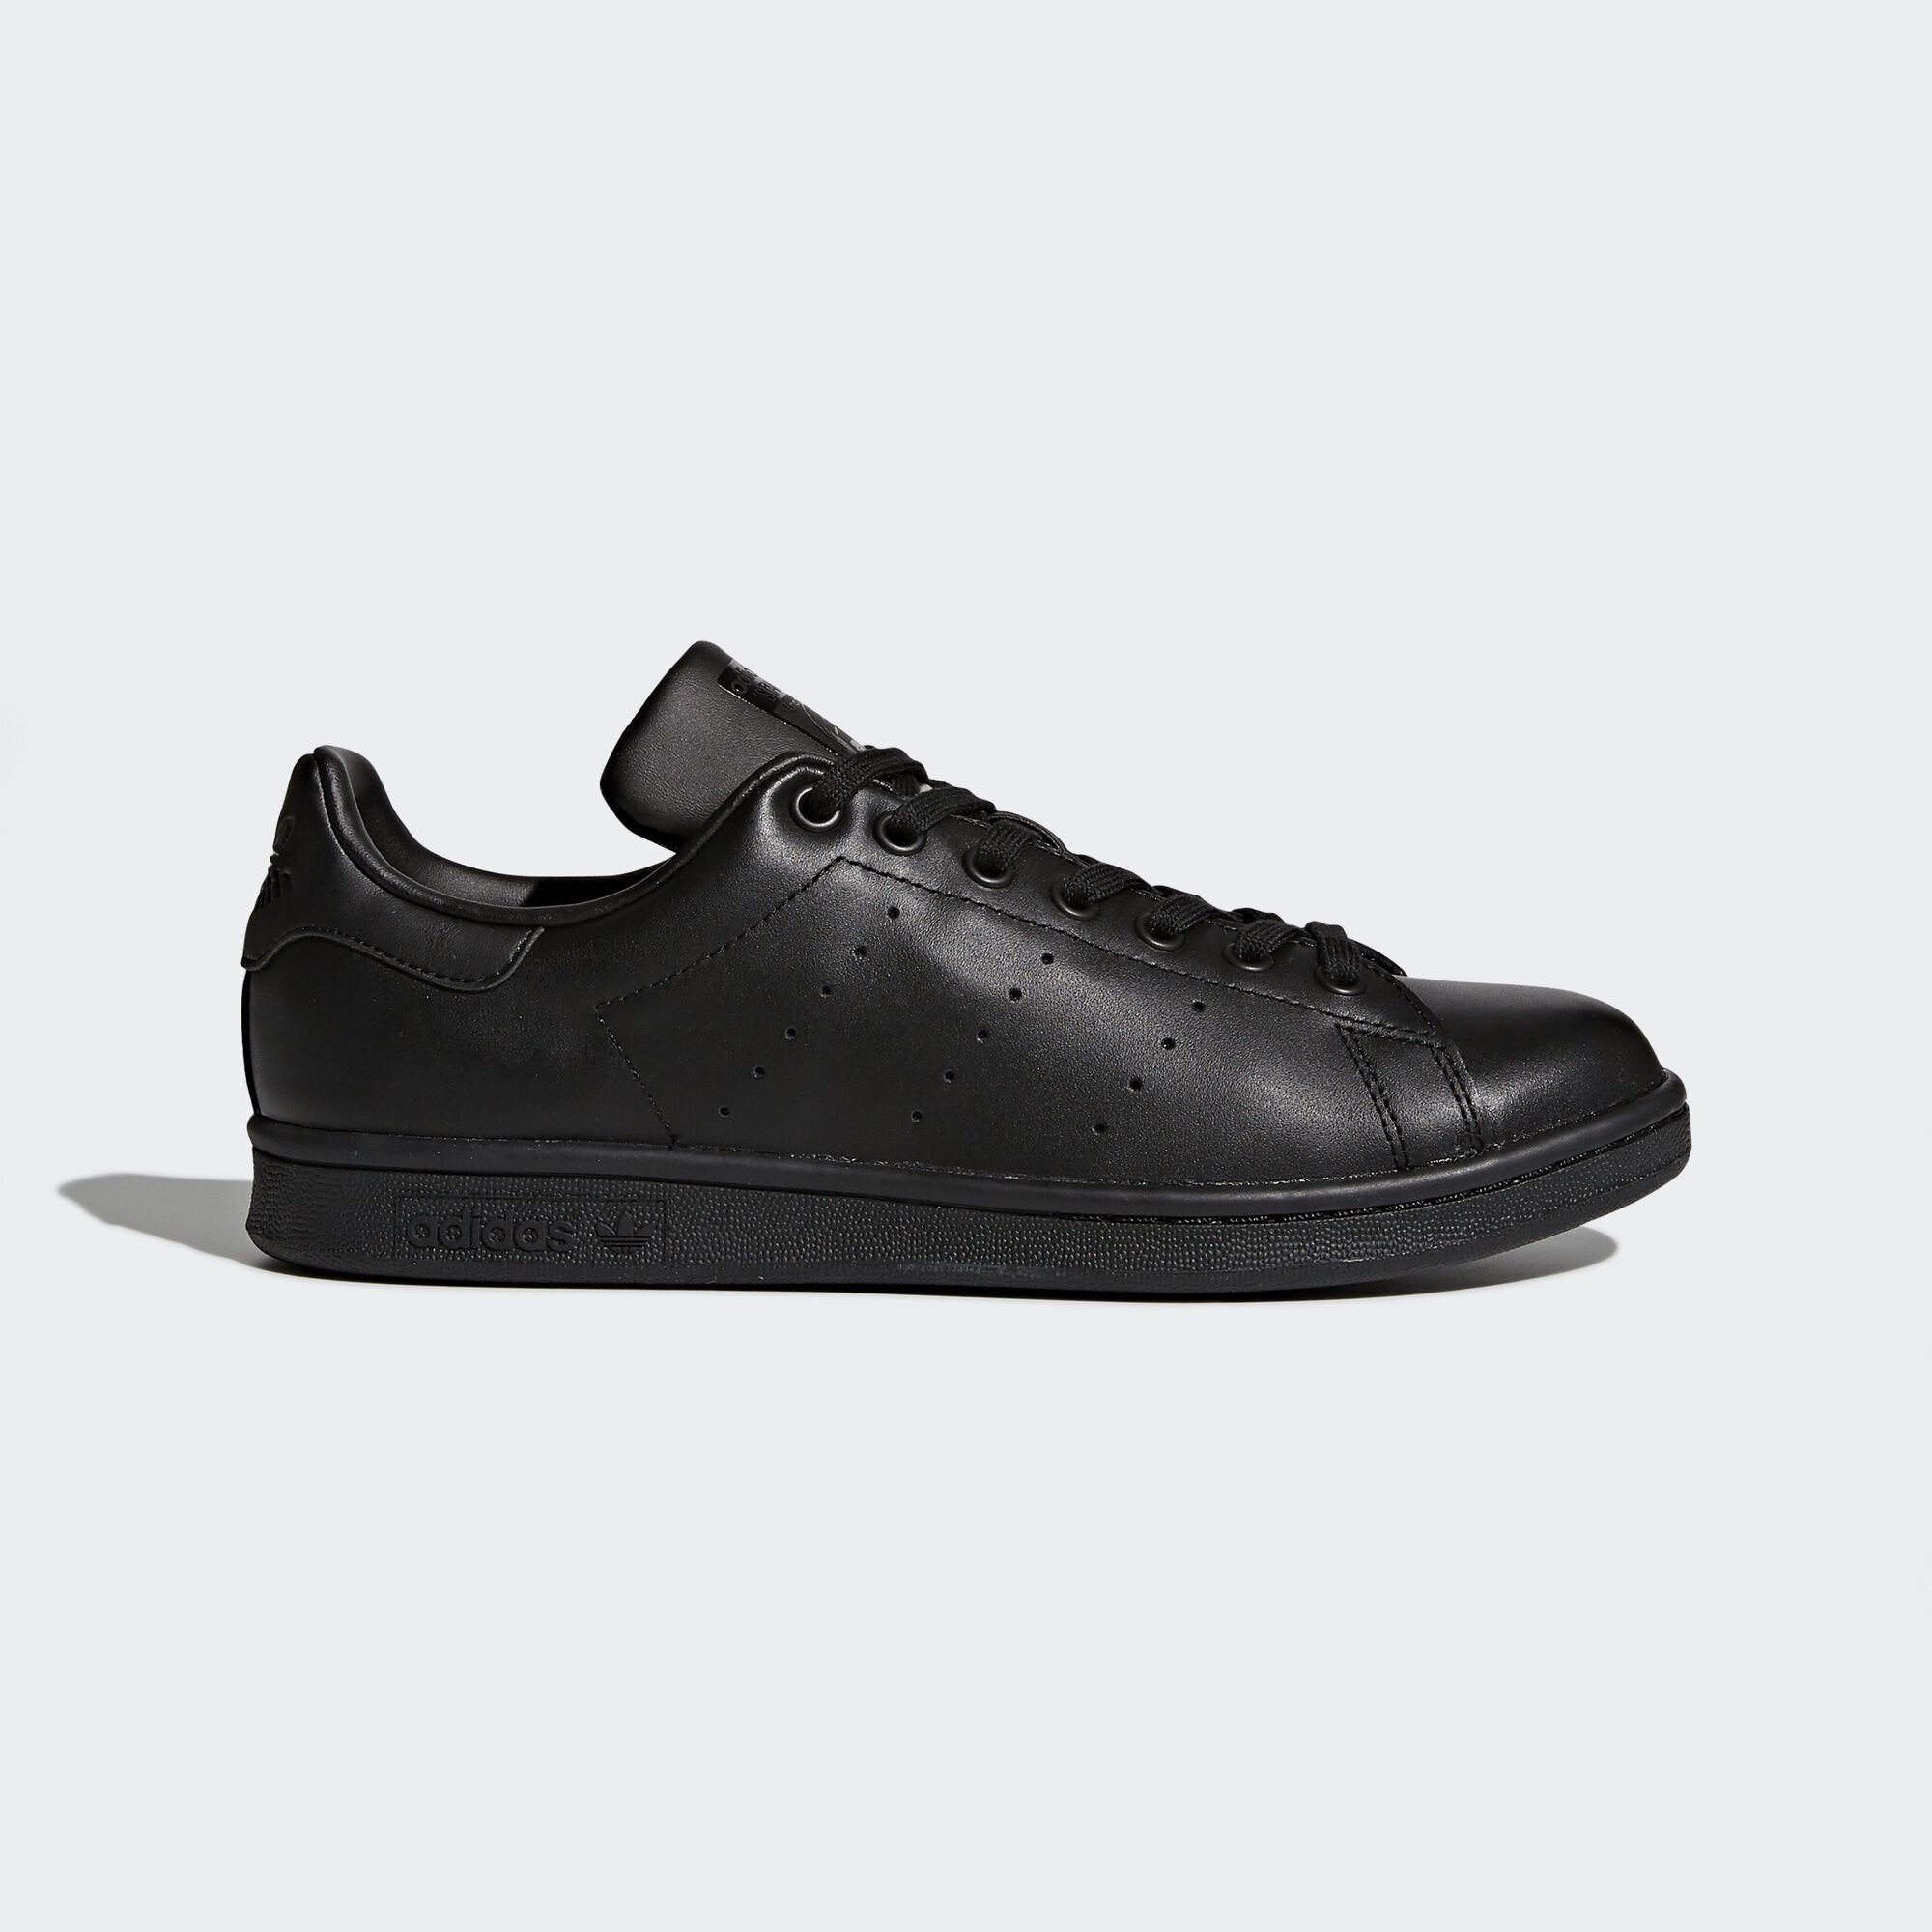 Adidas Stan Smith Black Velcro